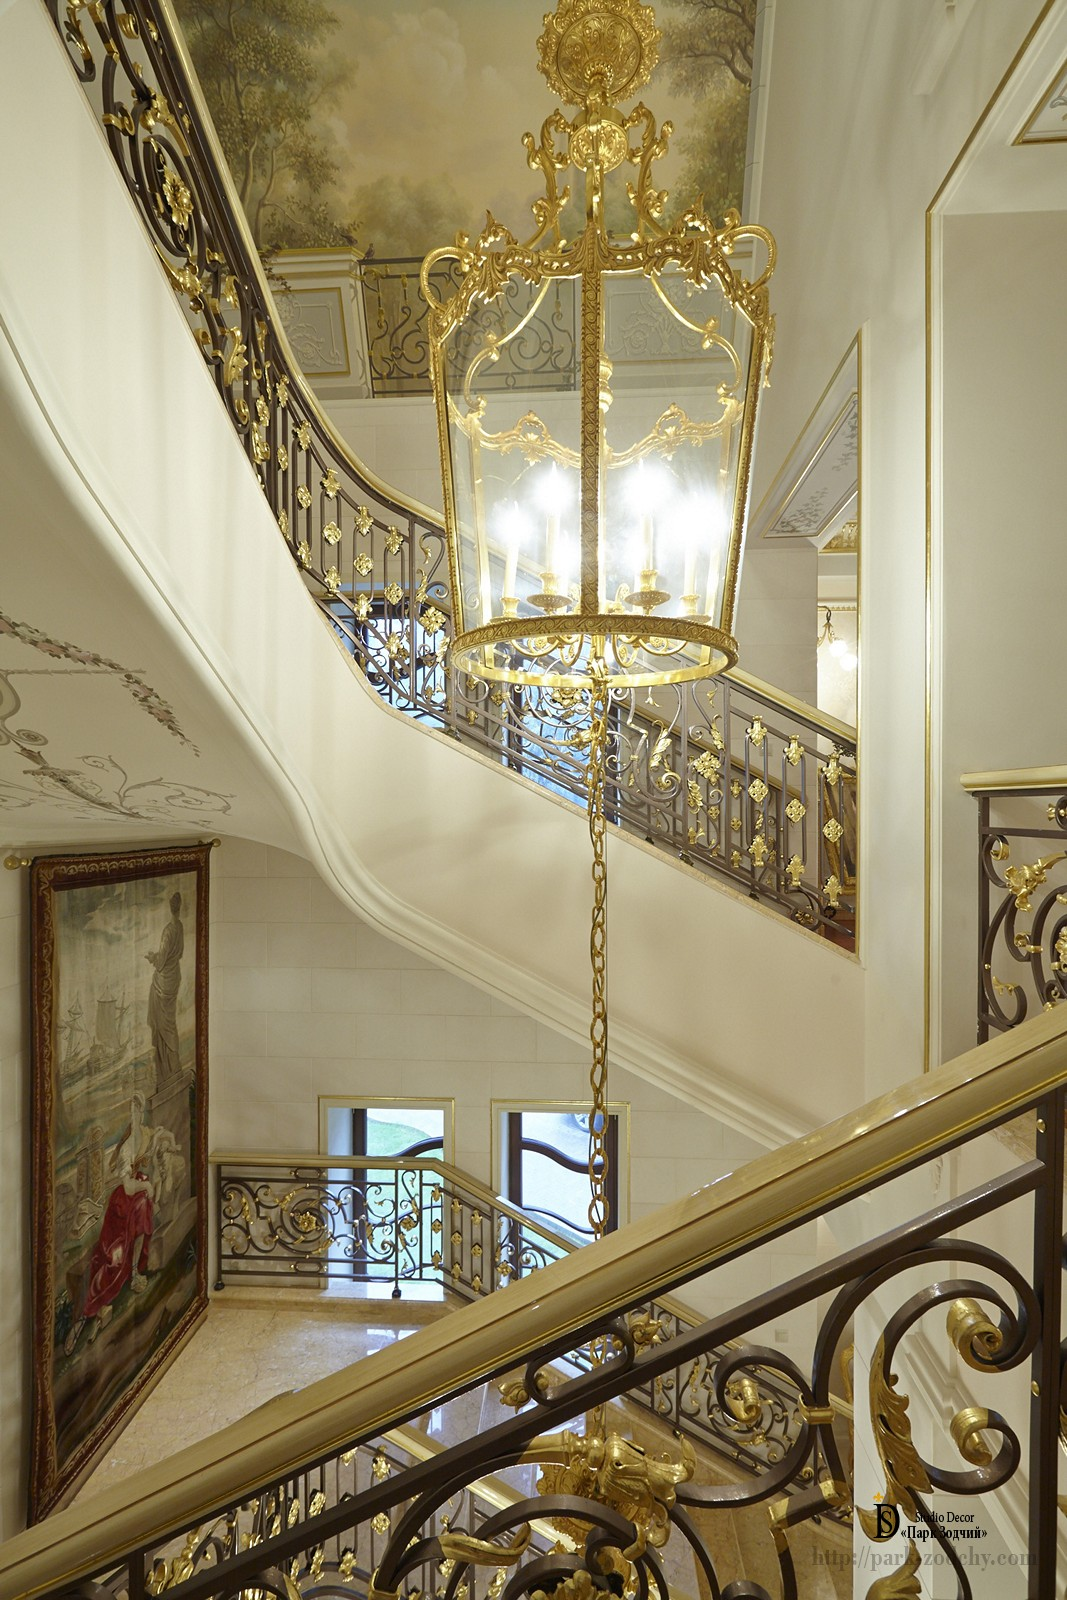 Staircase in a country mansion with painting and gilding